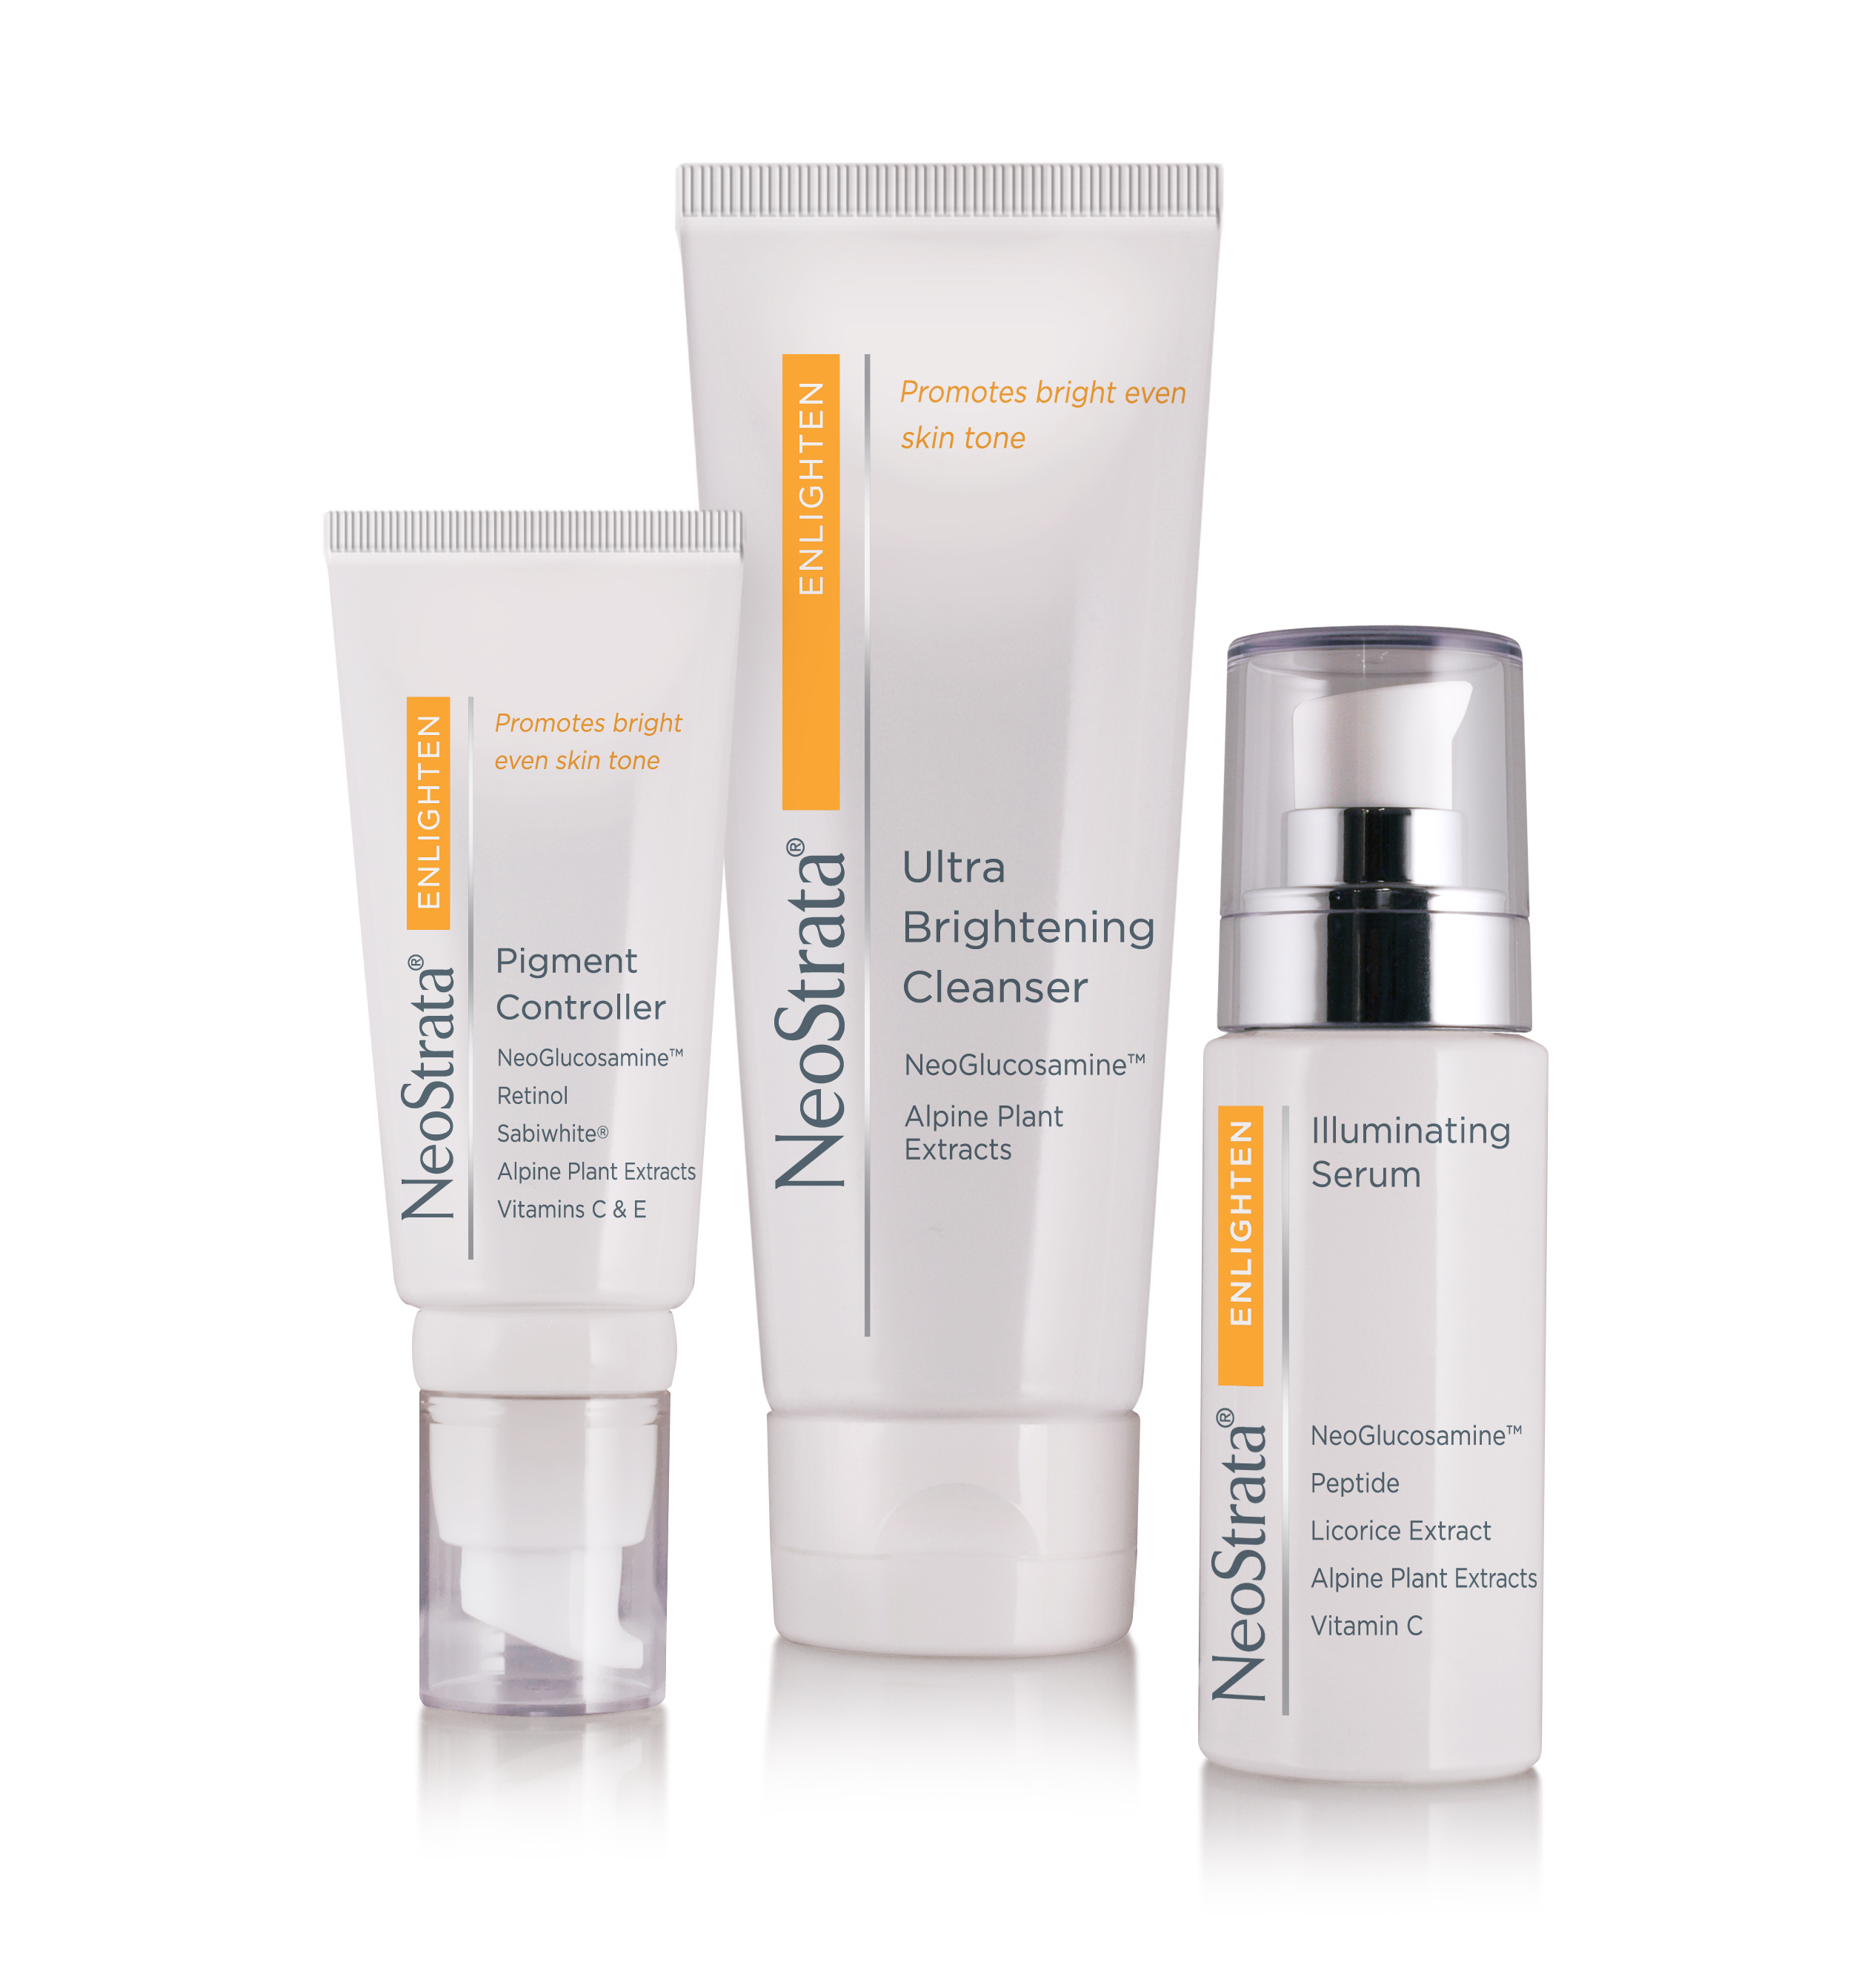 Top Skin Tips from Neostrata